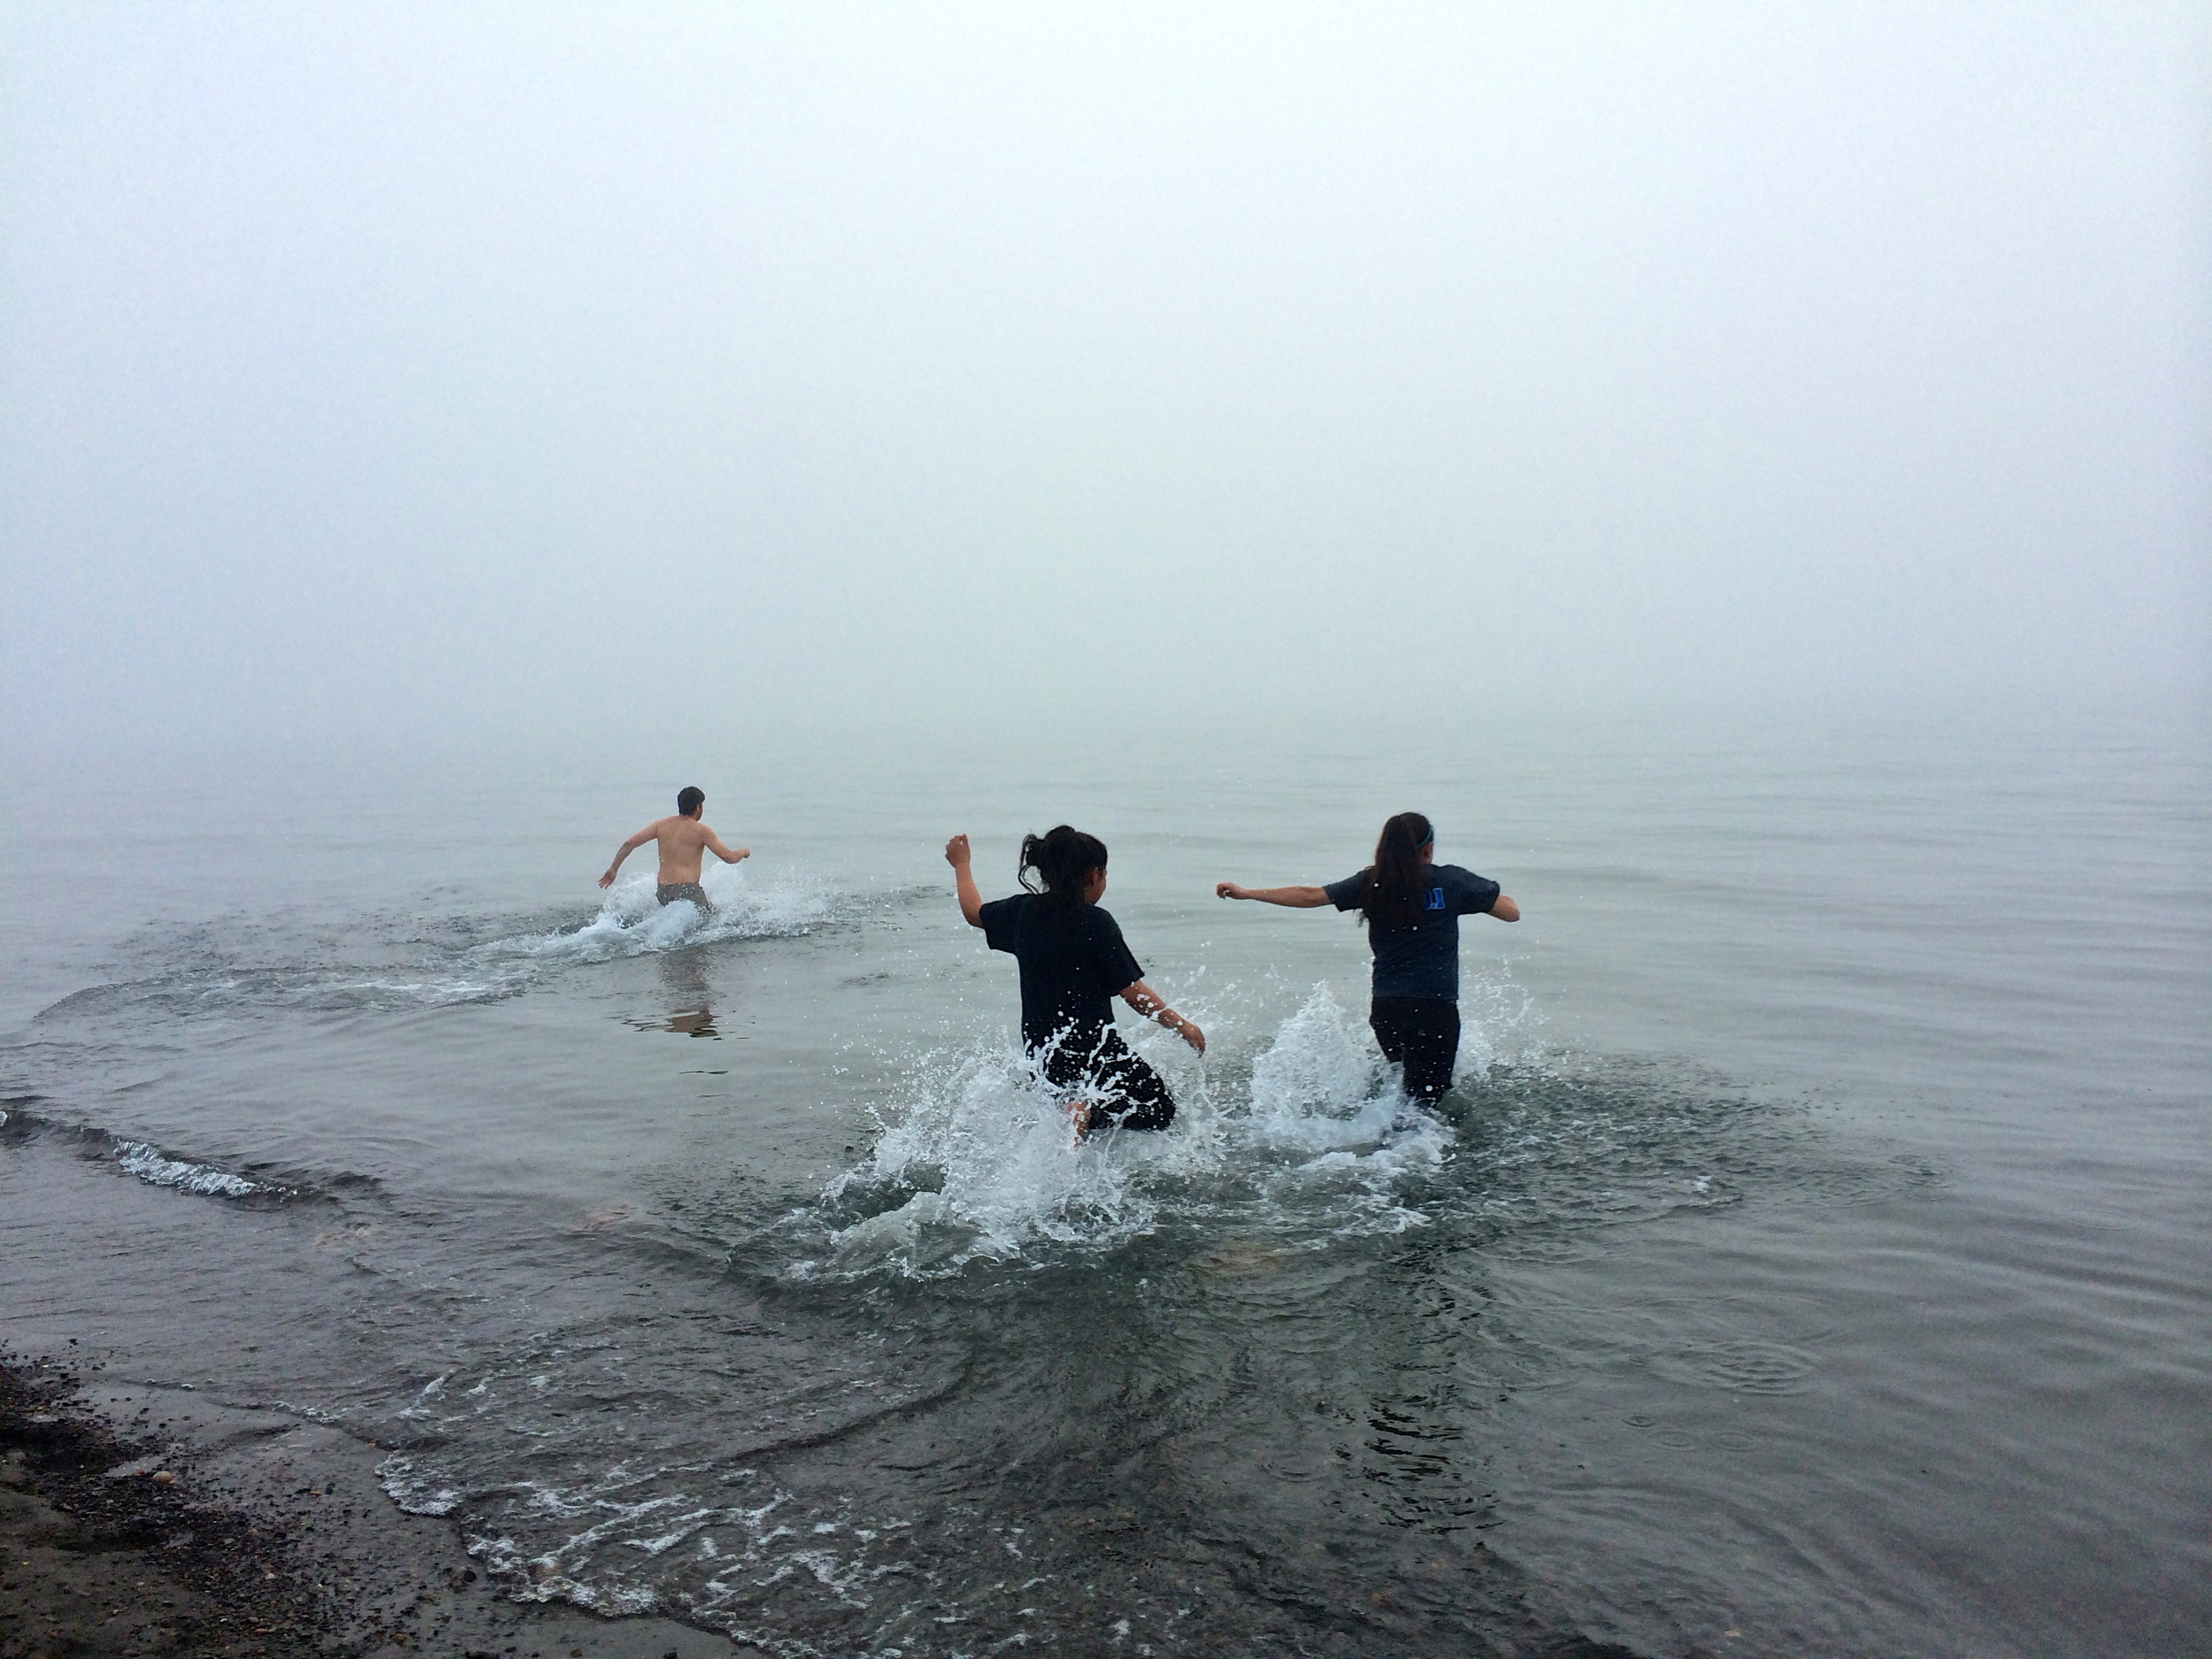 Frank, Yvonne, and Evelyn make the plunge.